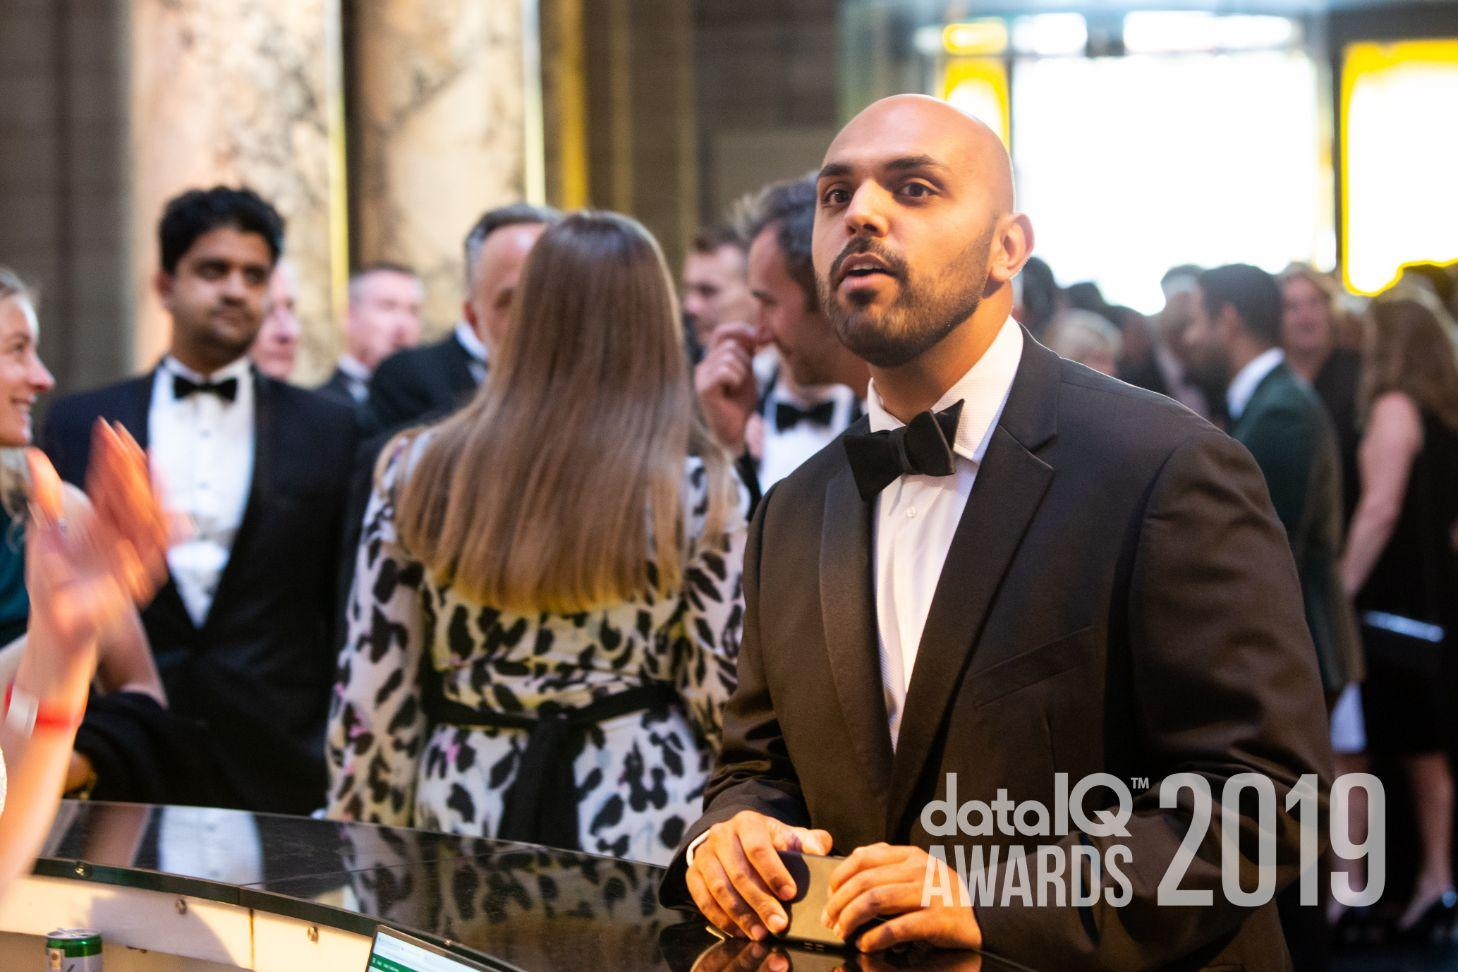 Awards 2019 Image 29